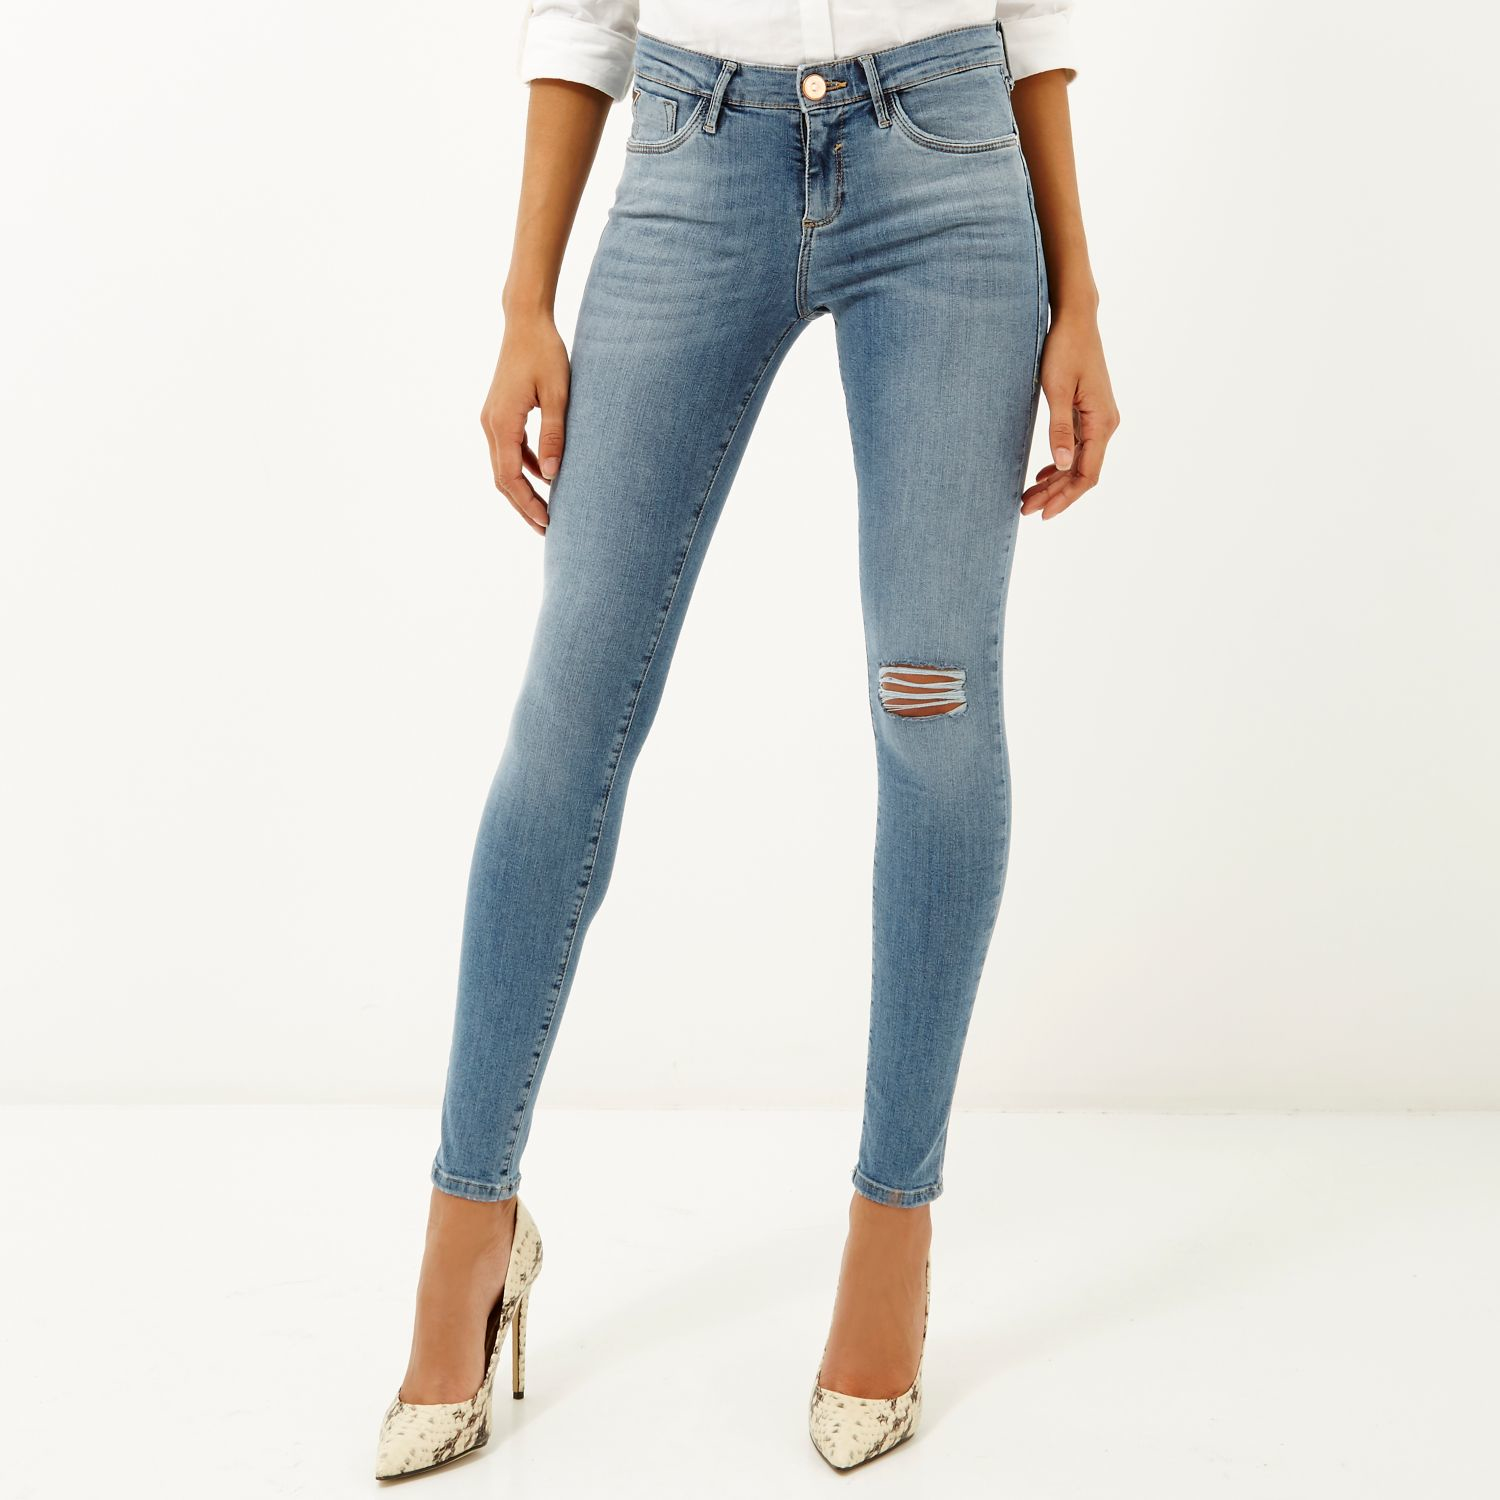 Super Skinny Ripped Jeans | Bbg Clothing